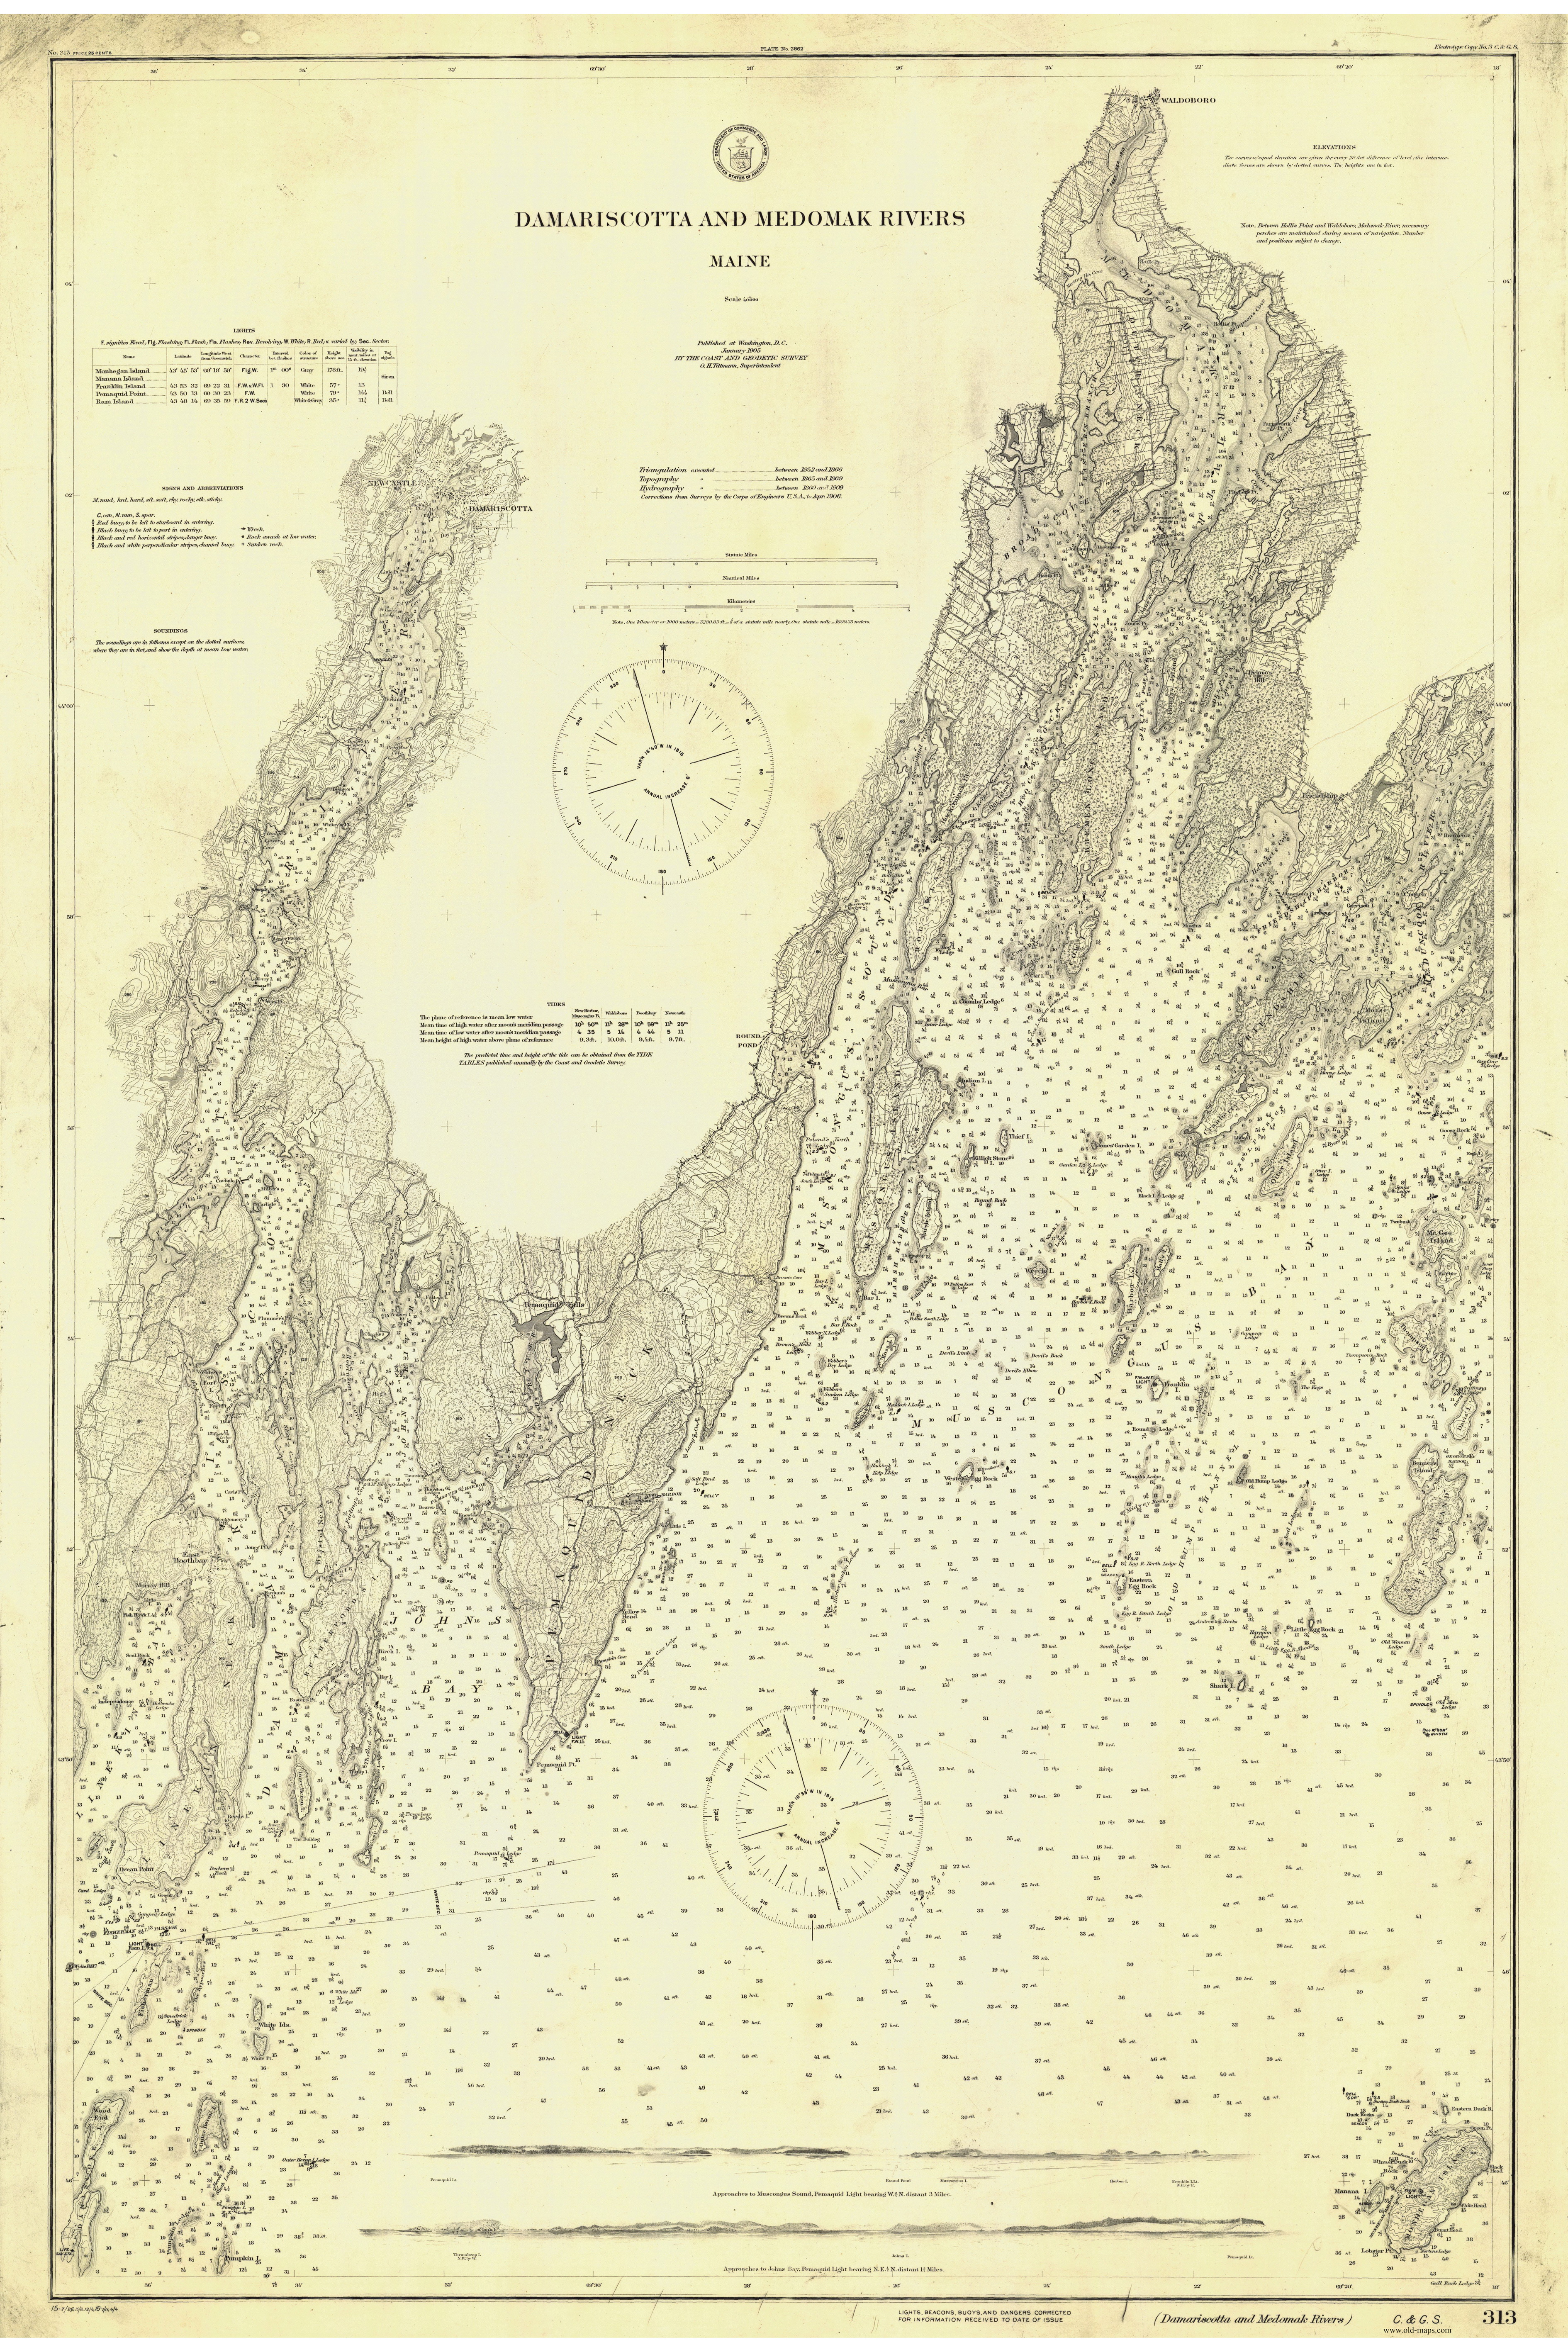 Historical Nautical Charts Of Maine Portland To Penobscot Bay - Map of maine rivers